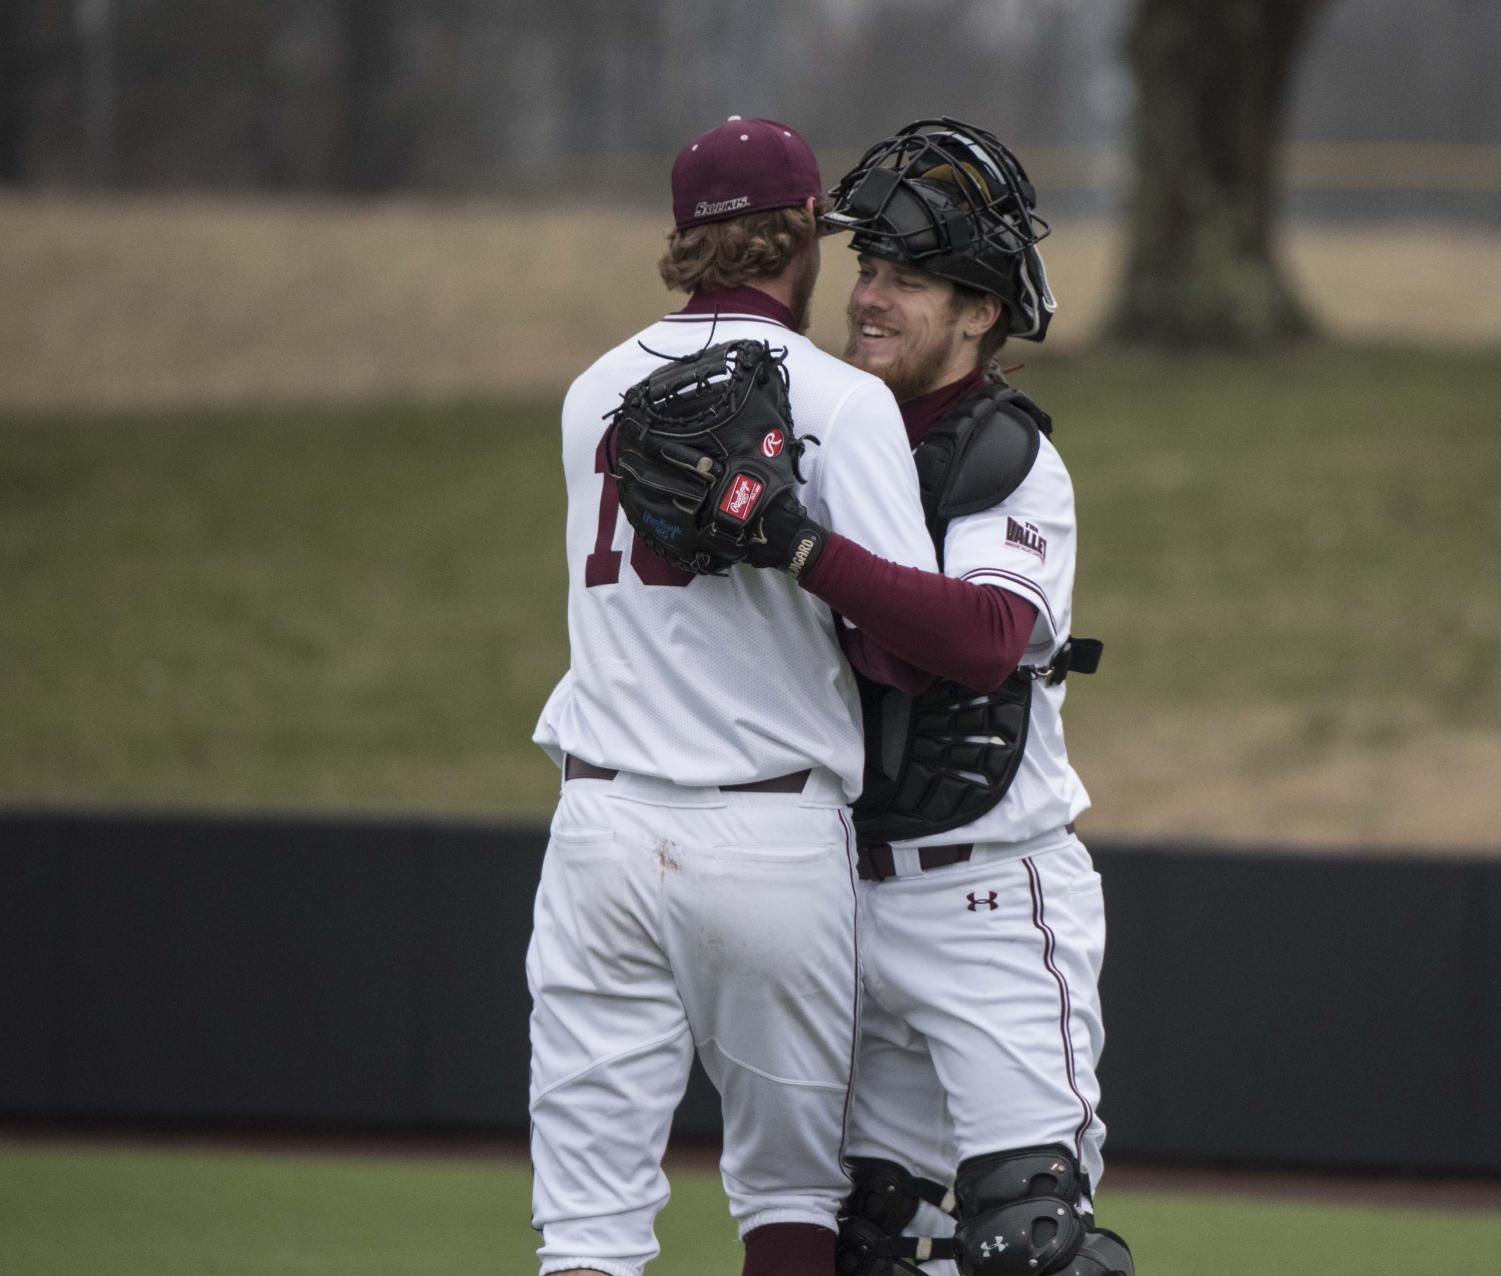 Saluki+Catcher+Colin+Butkiewicz+and+pitcher+Matthew+Steidl+embrace+at+the+end+of+the+tenth+inning+on+Friday%2C+March+1%2C+2019.+The+Salukis+won+both+matches+in+a+double+header+against+Western+Illinois+University.+